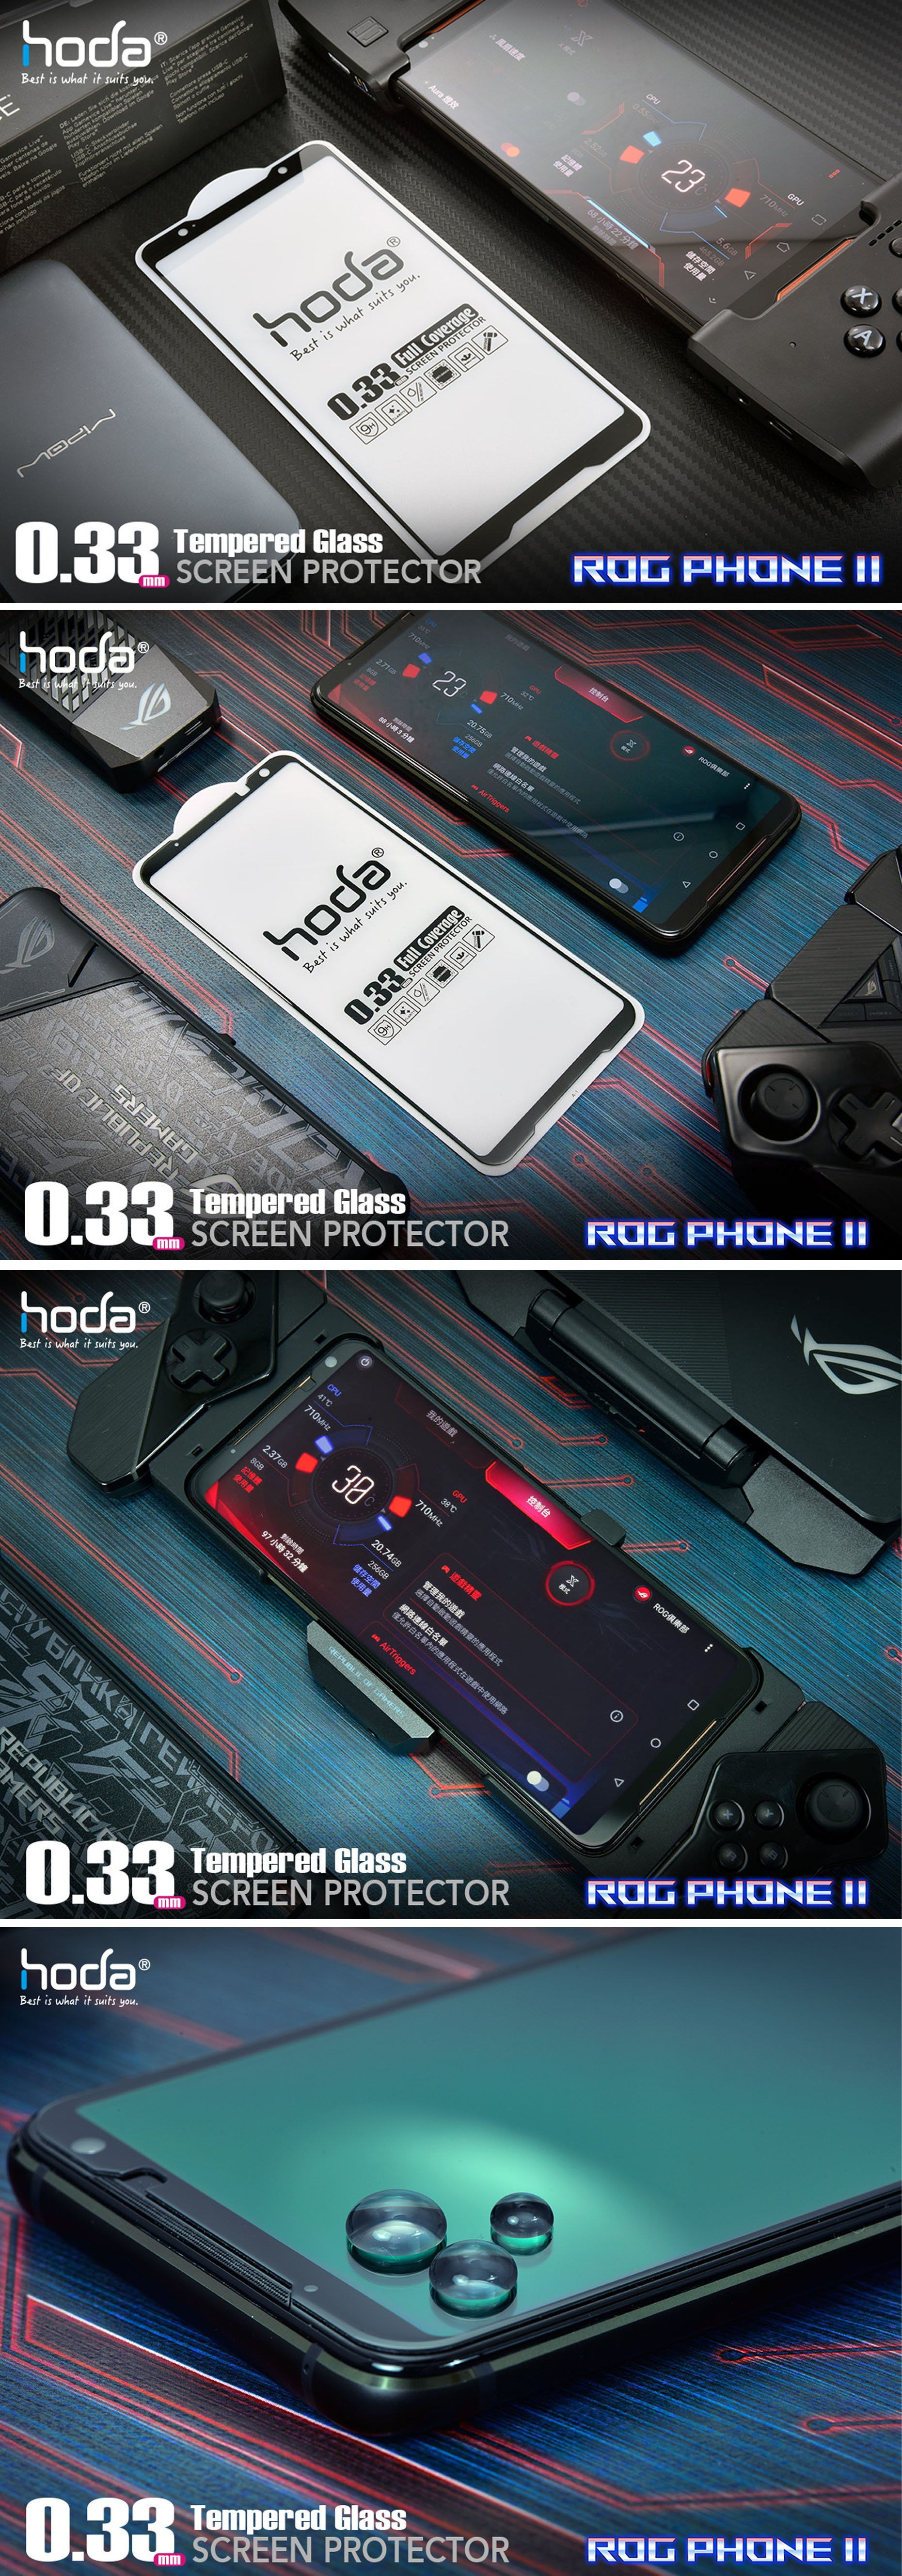 /hoda/4713381515020/1-des-fx-hoda-anti-glare-tempered-glass-asus-rog-phone-2-zs660kl-2.5D-0.33mm-screen-protector-clear-4713381515020-malaysia-authorised-retailer